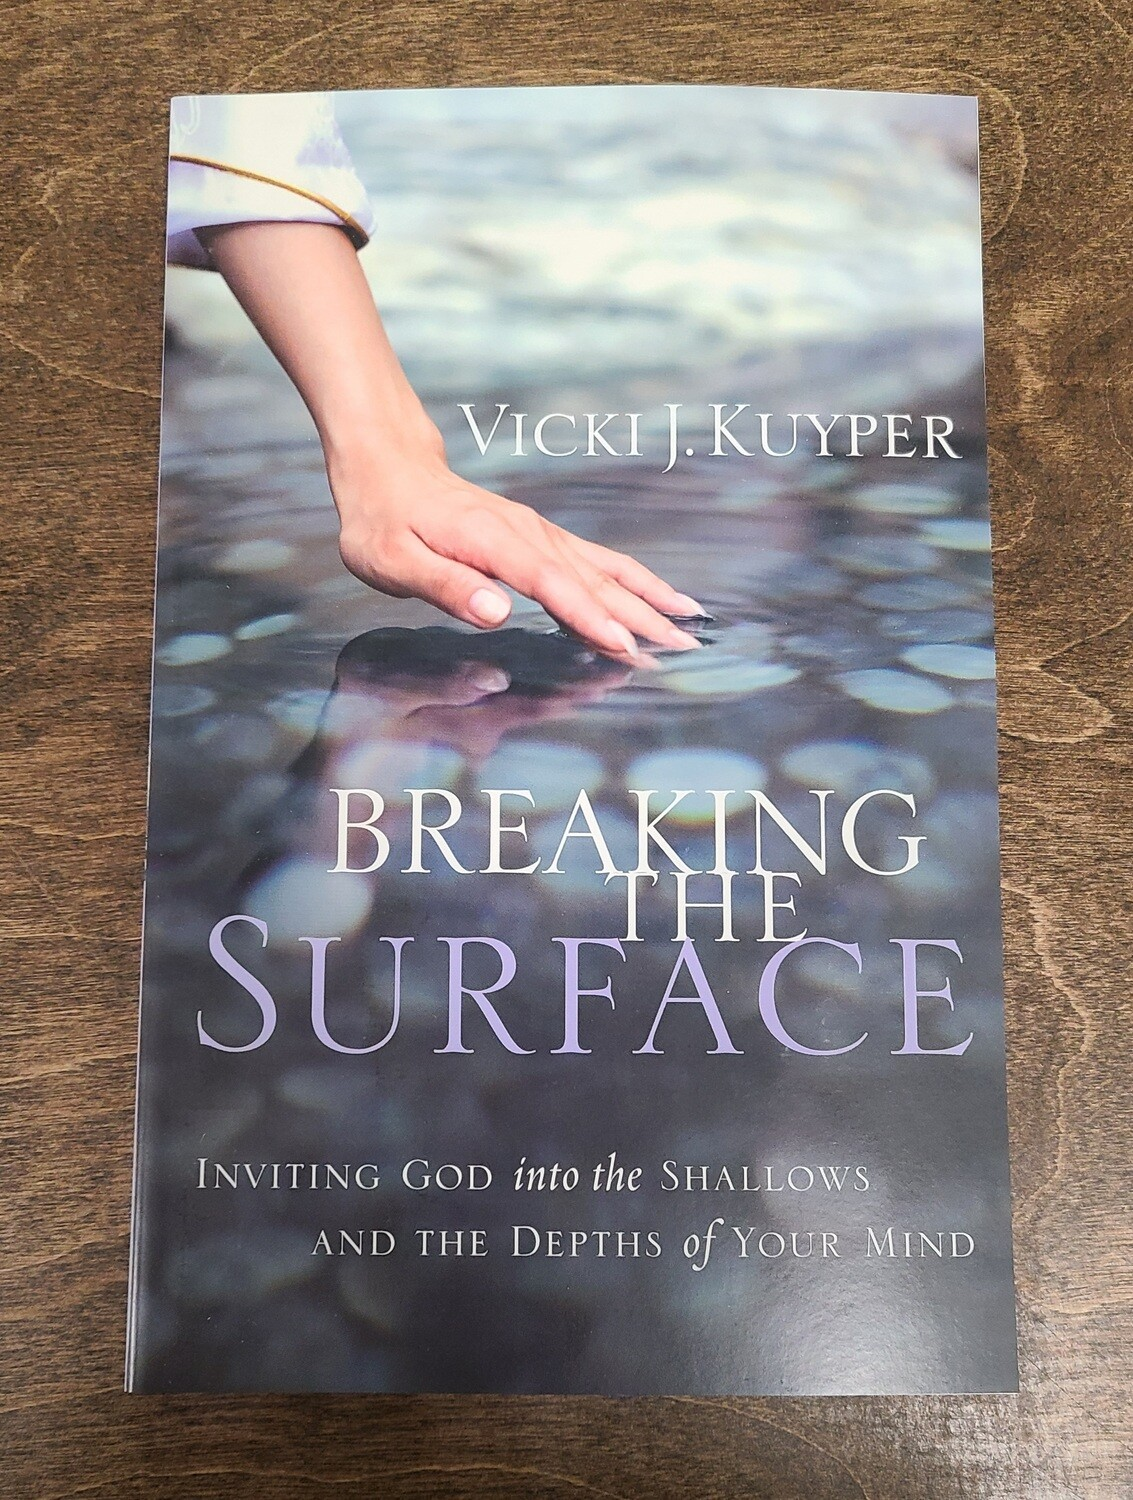 Breaking the Surface: Inviting God into the Shallows and the Depths of Your Mind by Vicki J. Kuyper